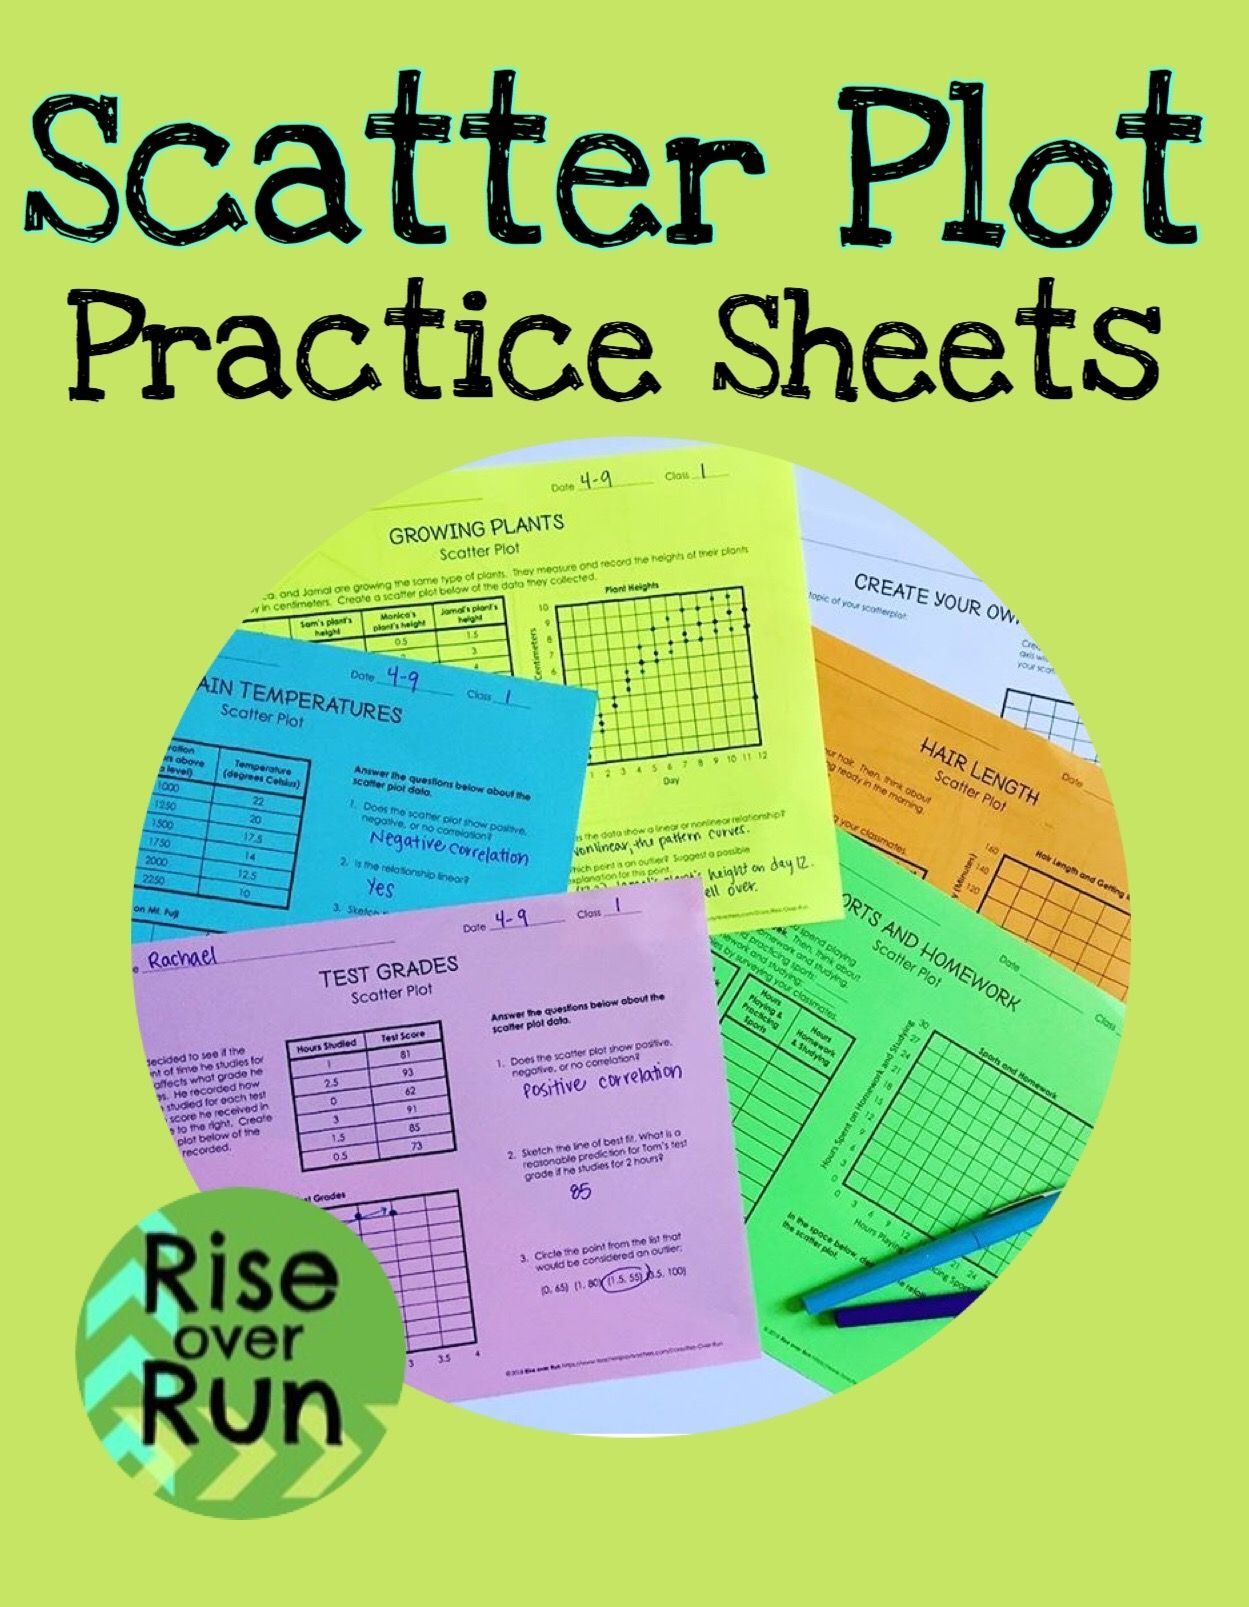 Scatter plot practice worksheets and blank template to create your own.  Line of best fit [ 1607 x 1249 Pixel ]